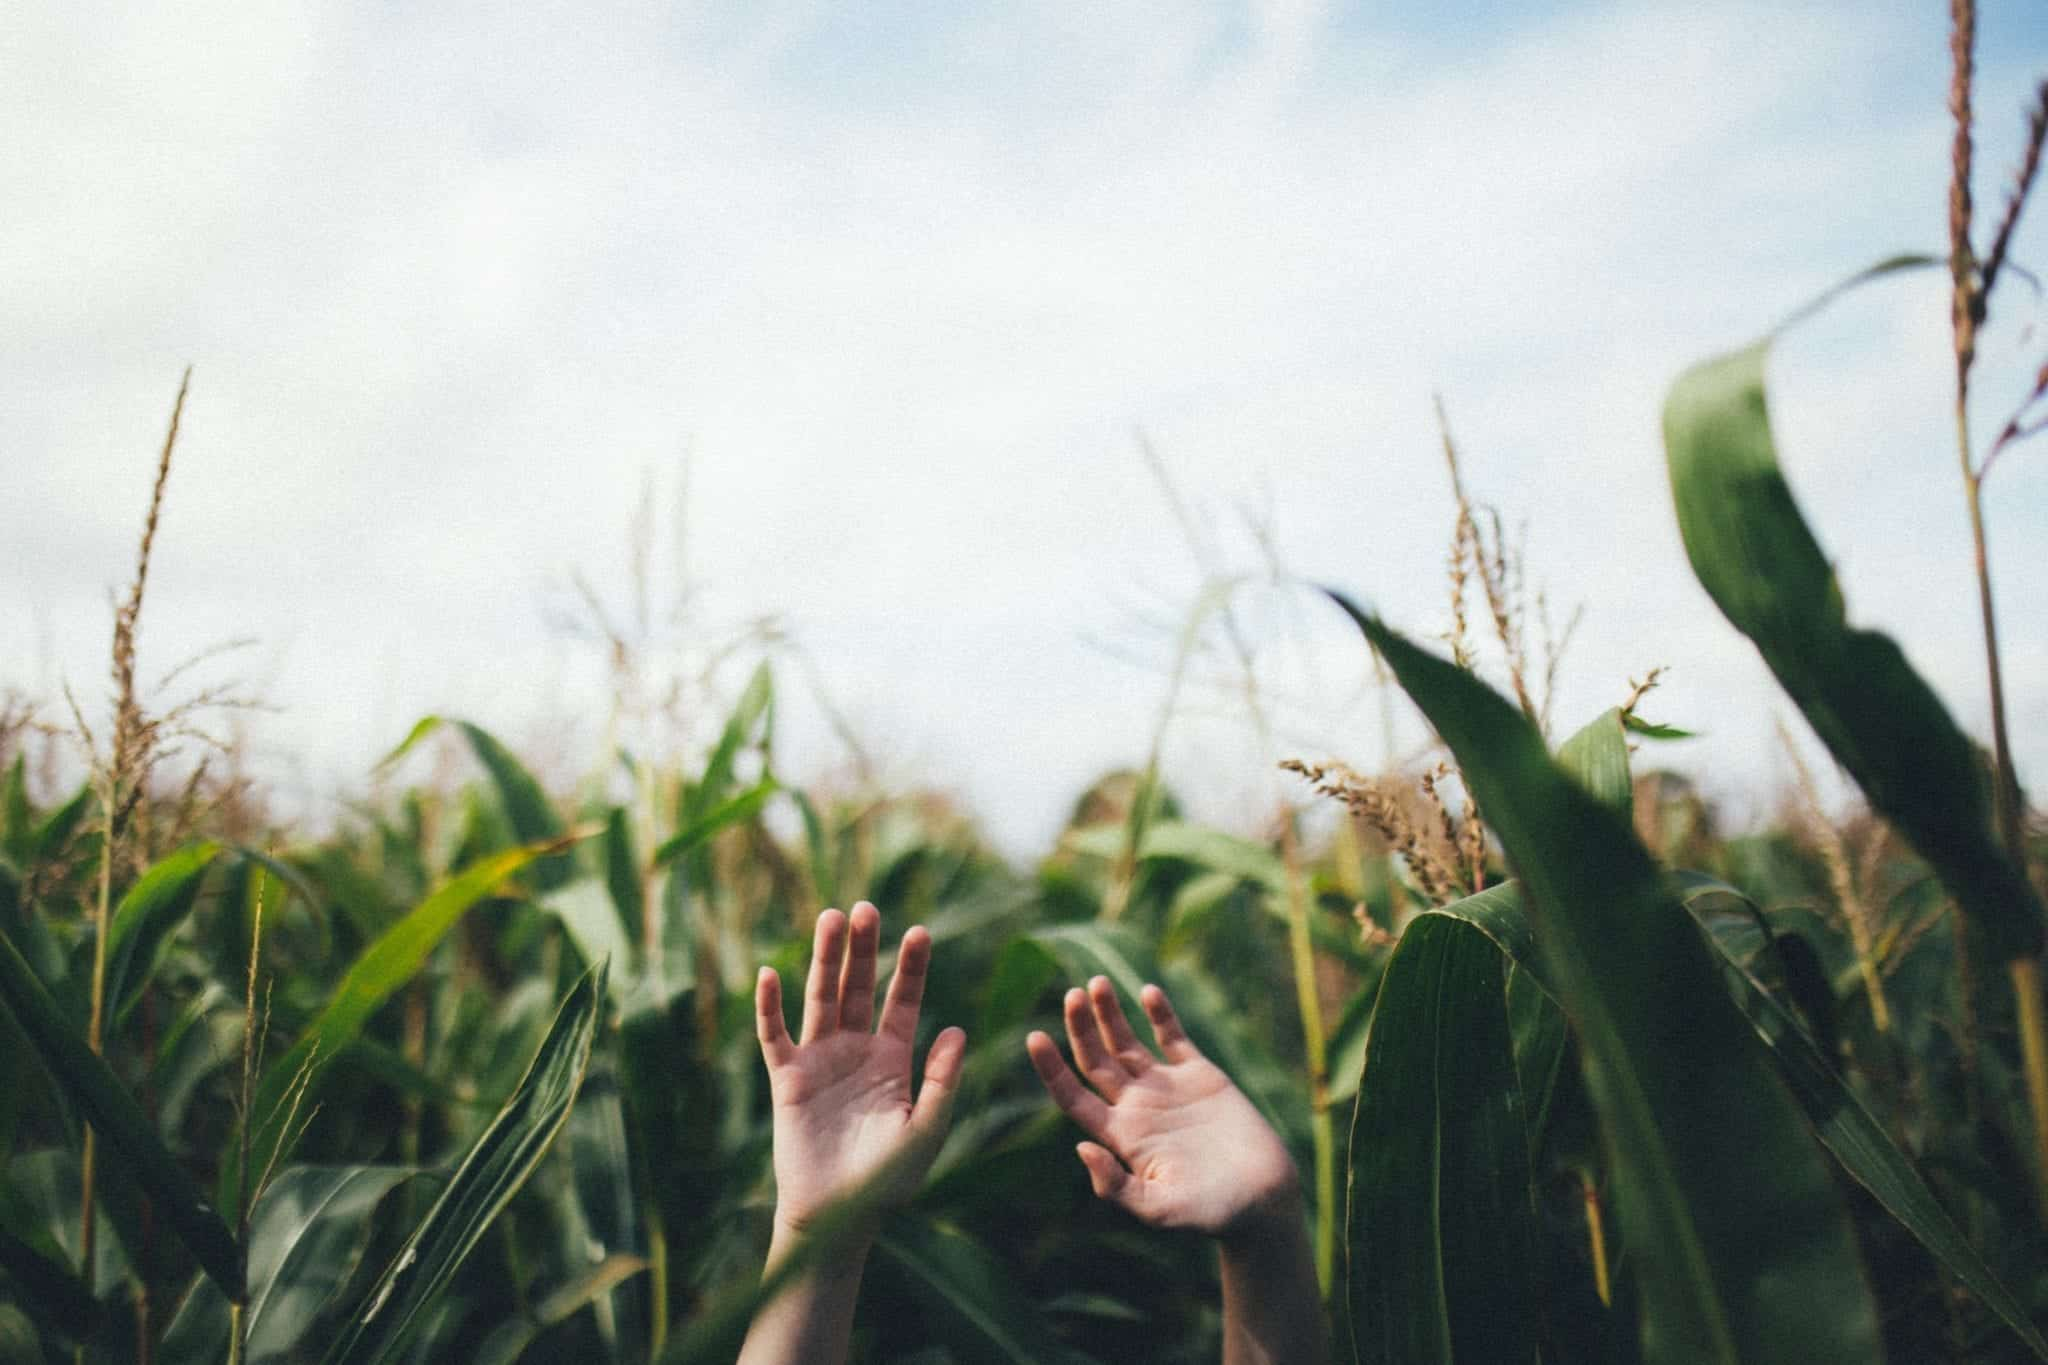 Two disembodied hands reach for the sky, in between endless rows of corn.